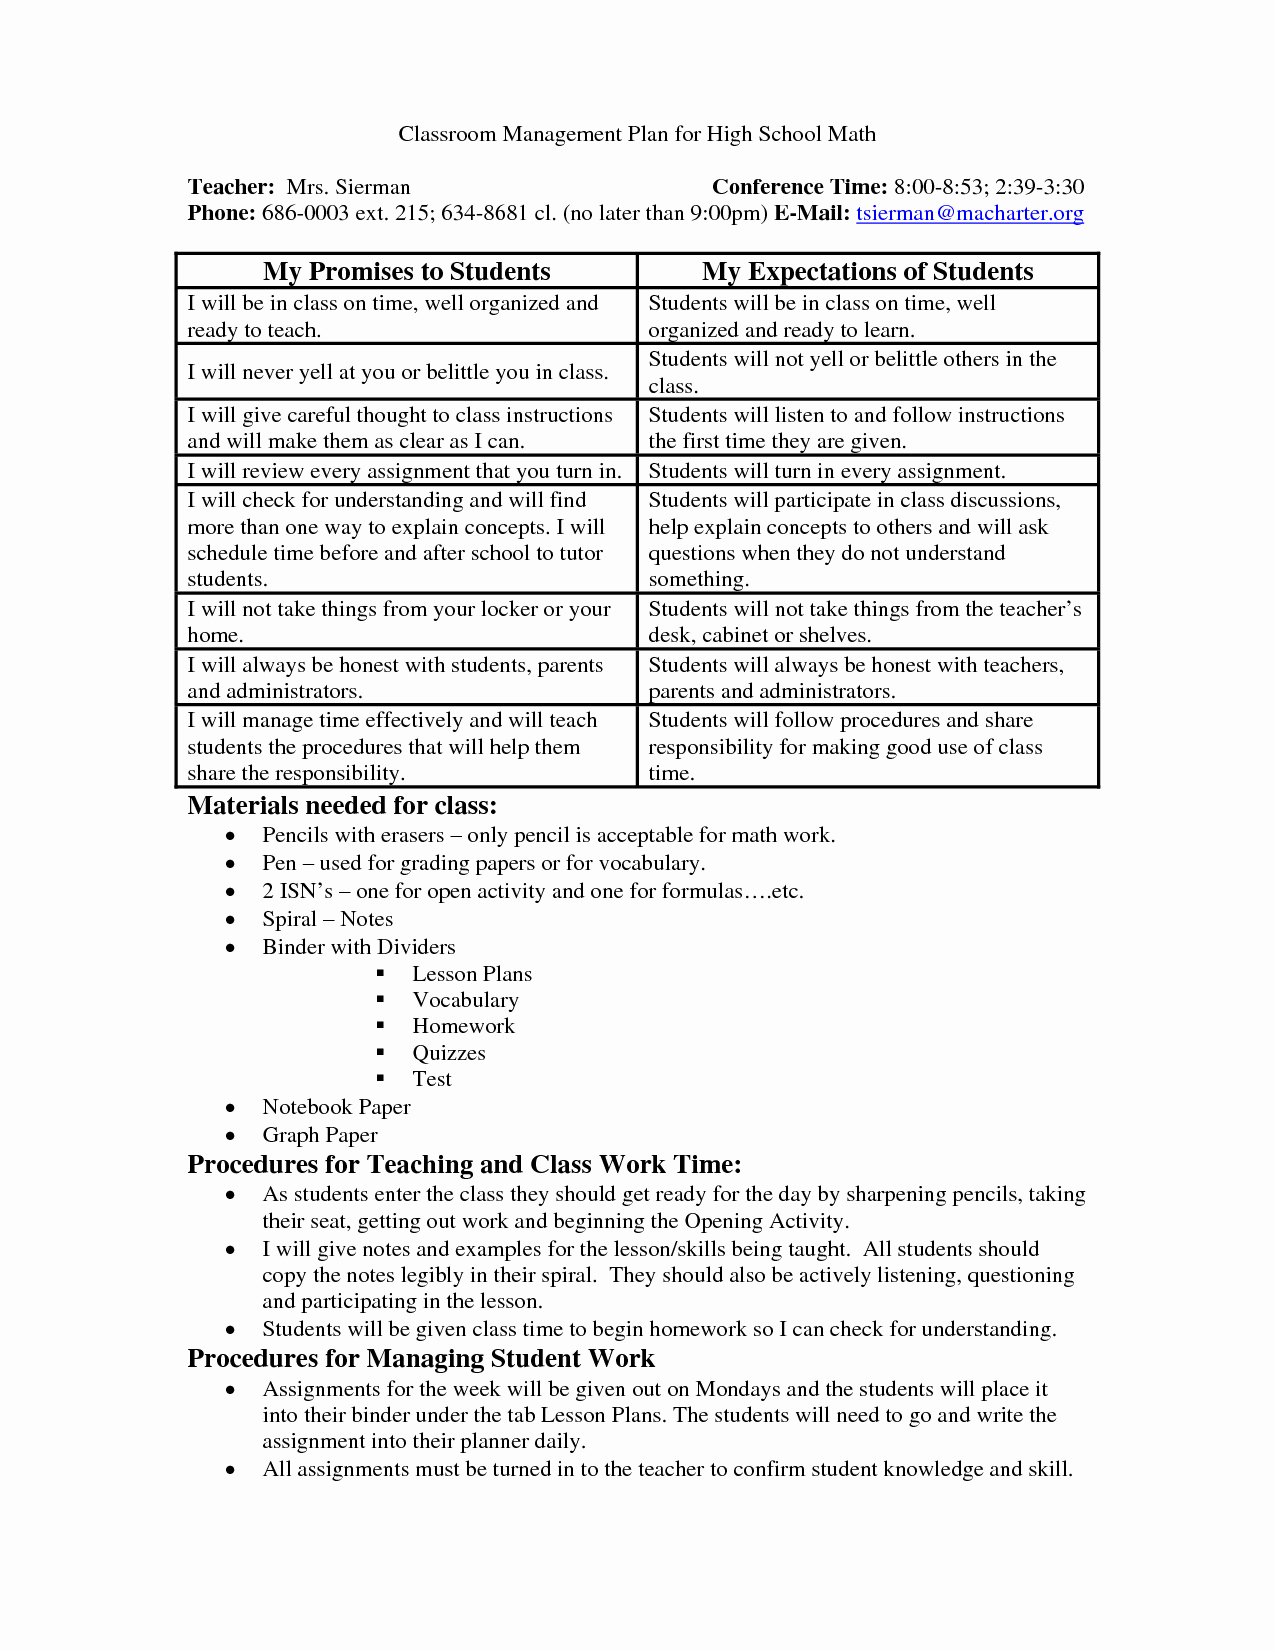 Classroom Management Plan Template Luxury Ideas 25 Pre School Classroom Management Plan